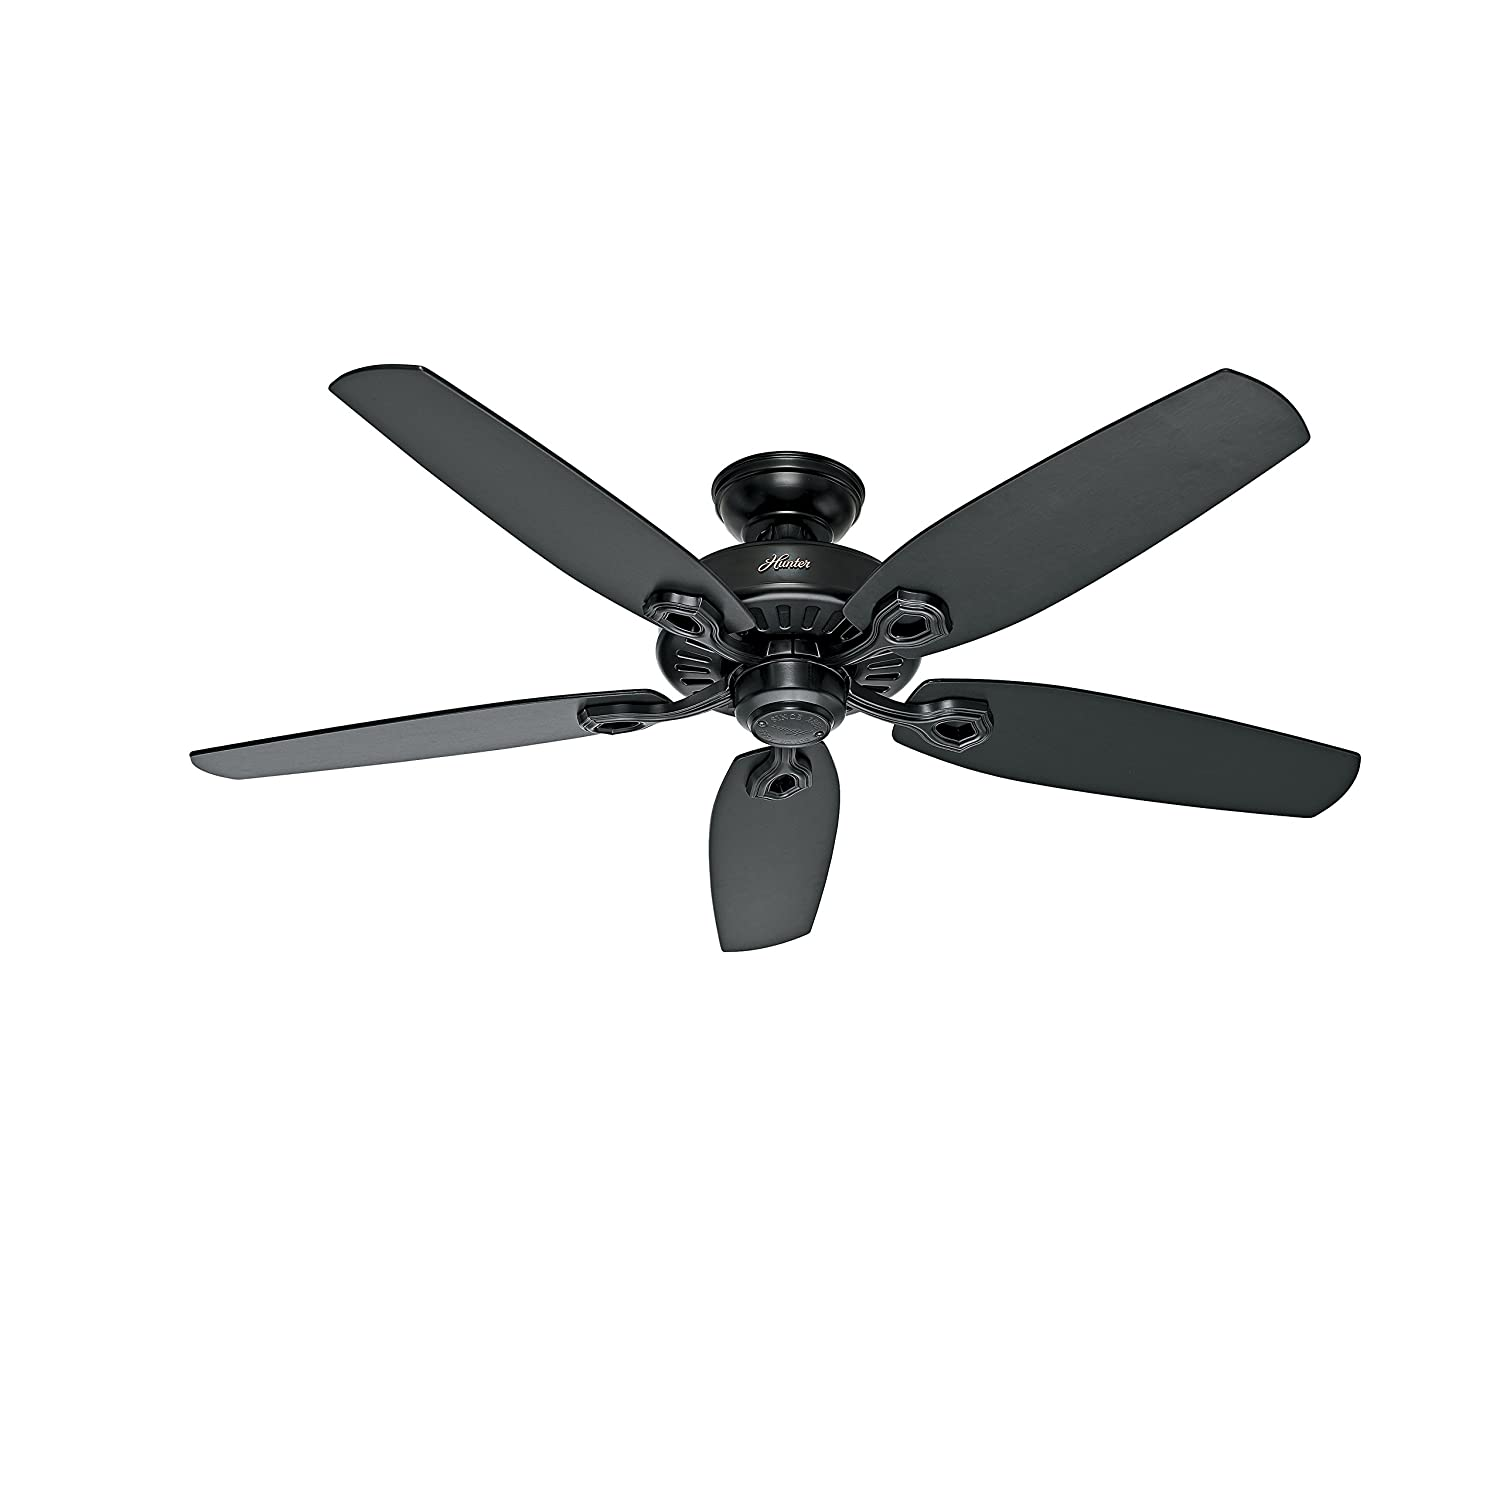 Hunter Fan 52in Ceiling Fan in Matte Black with Matte Black Reversible Fan Blades Renewed